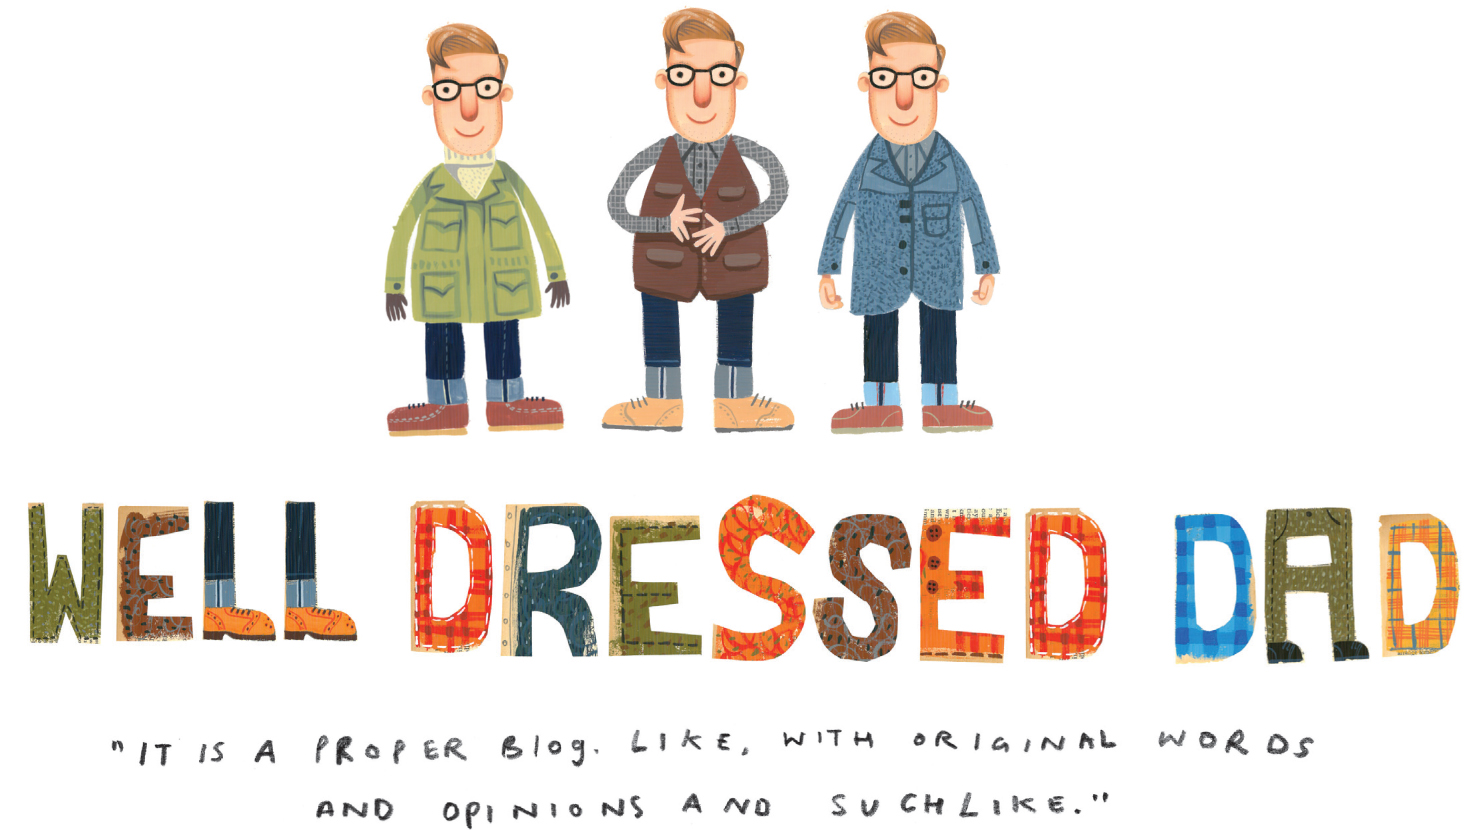 Well Dressed Dad - It is a proper menswear blog. Like, with original words and opinions and suchlike.